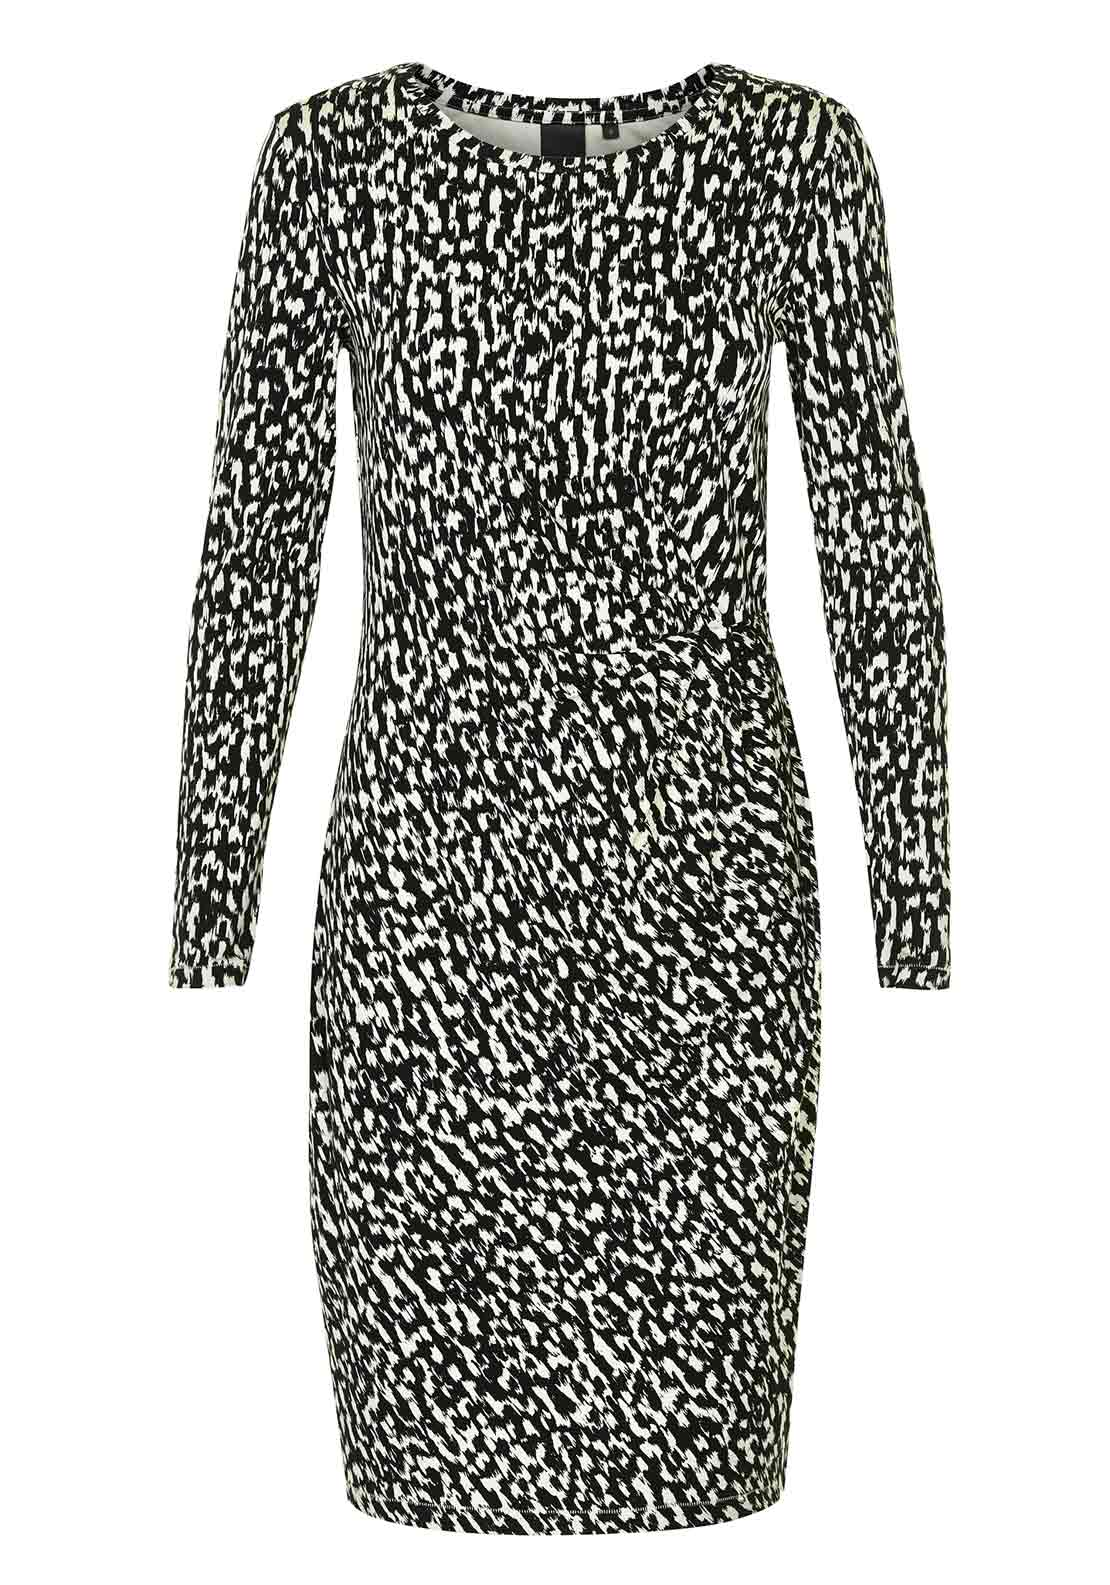 Inwear Rabia Brushstroke Print Long Sleeve Jersey Dress, Black and Cream